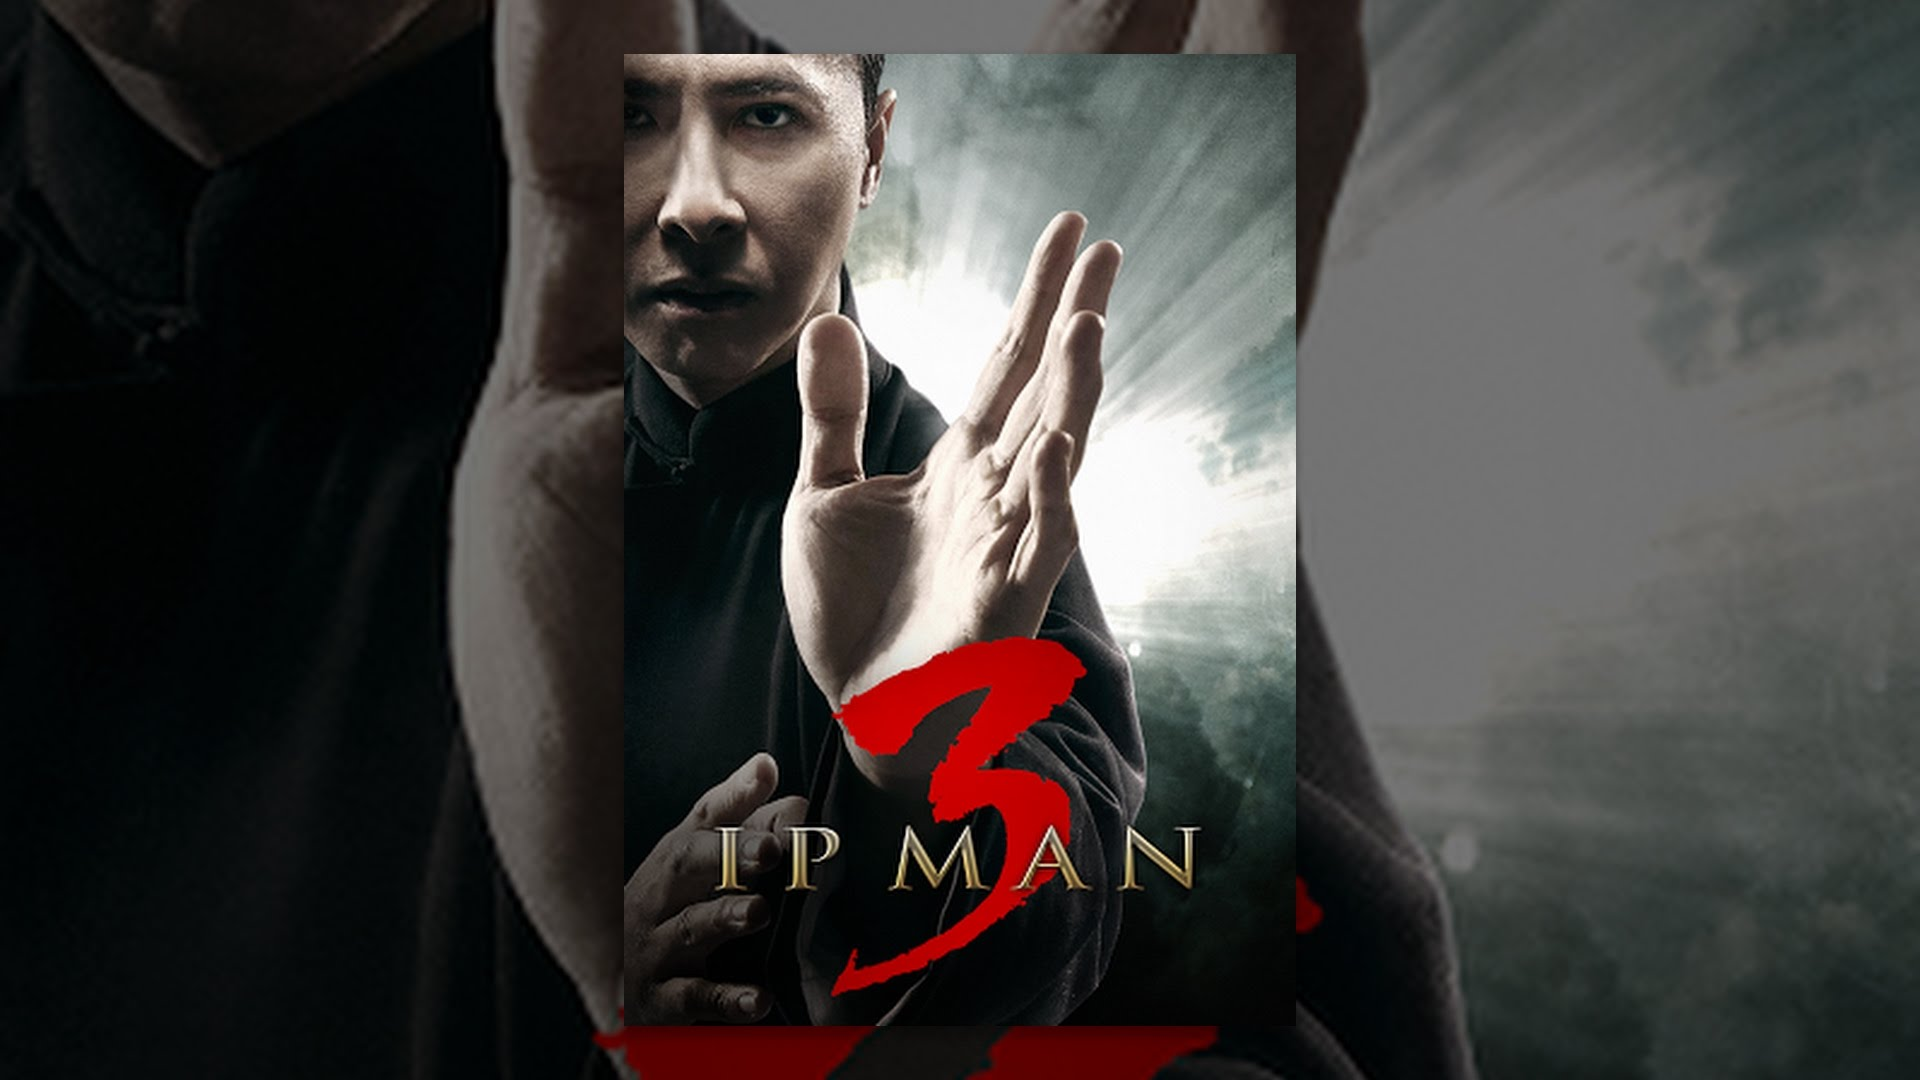 Ip man 3 release date in Melbourne